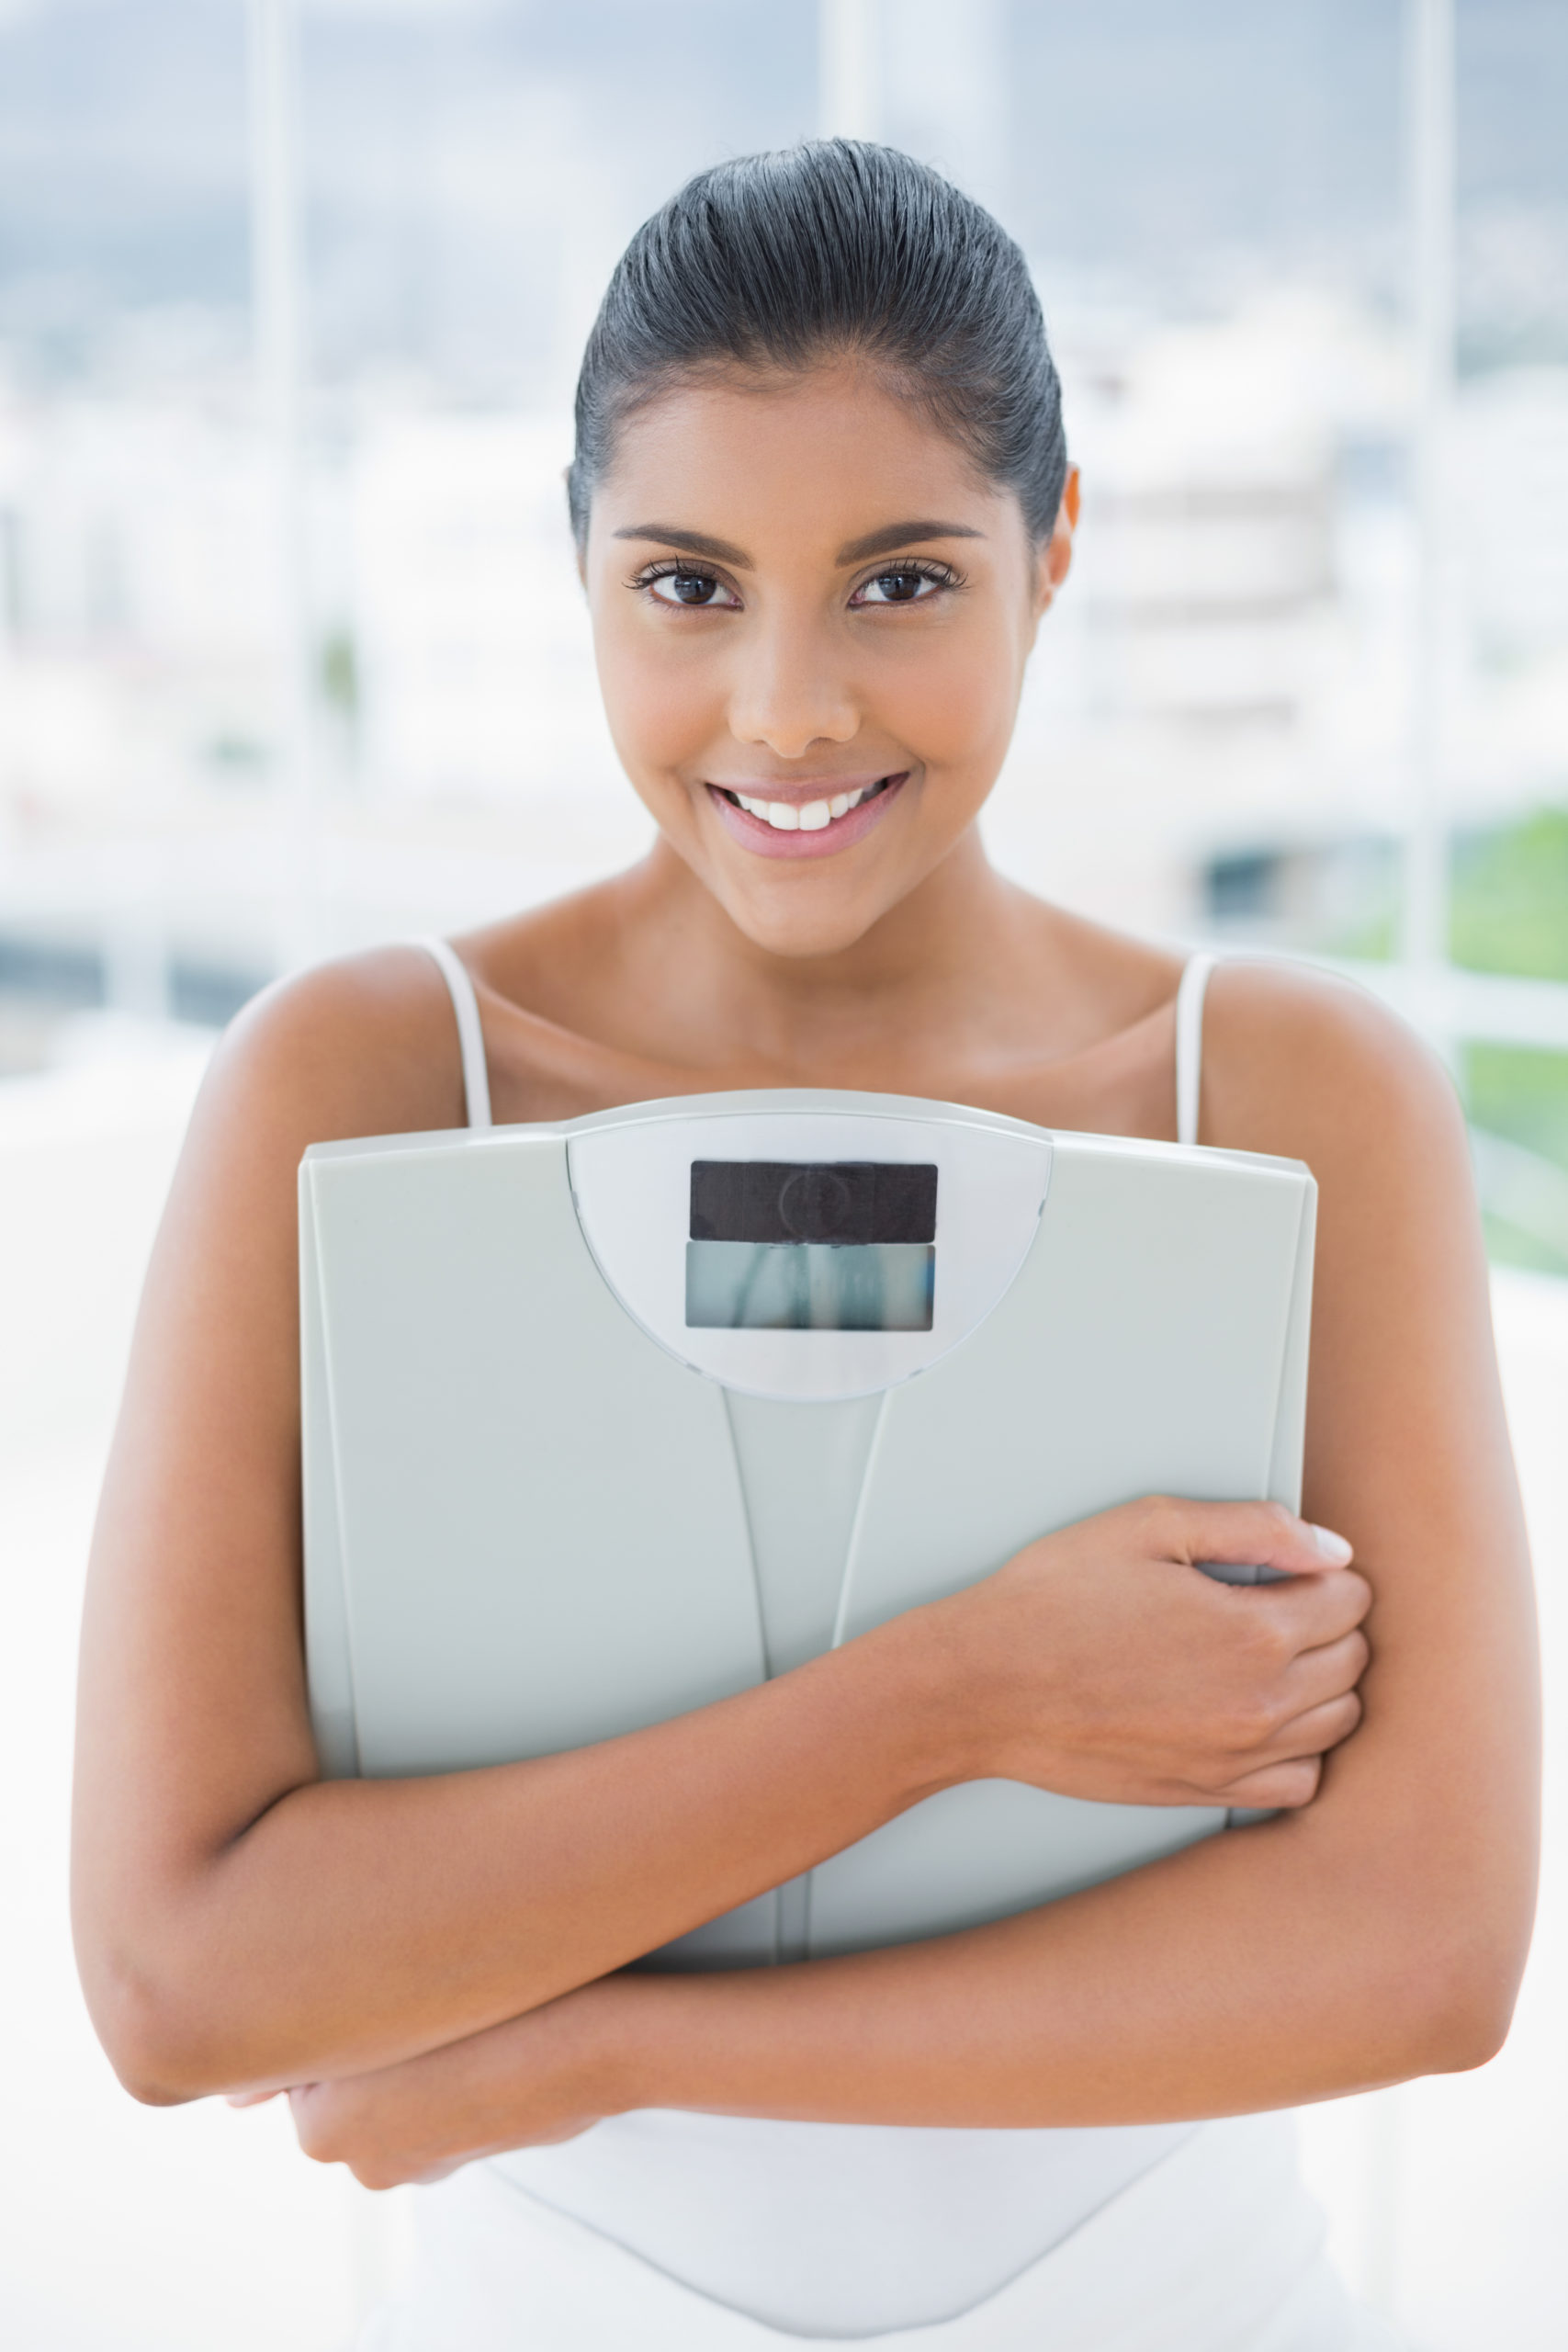 My health - Genetic testing for wellness service - lady happy